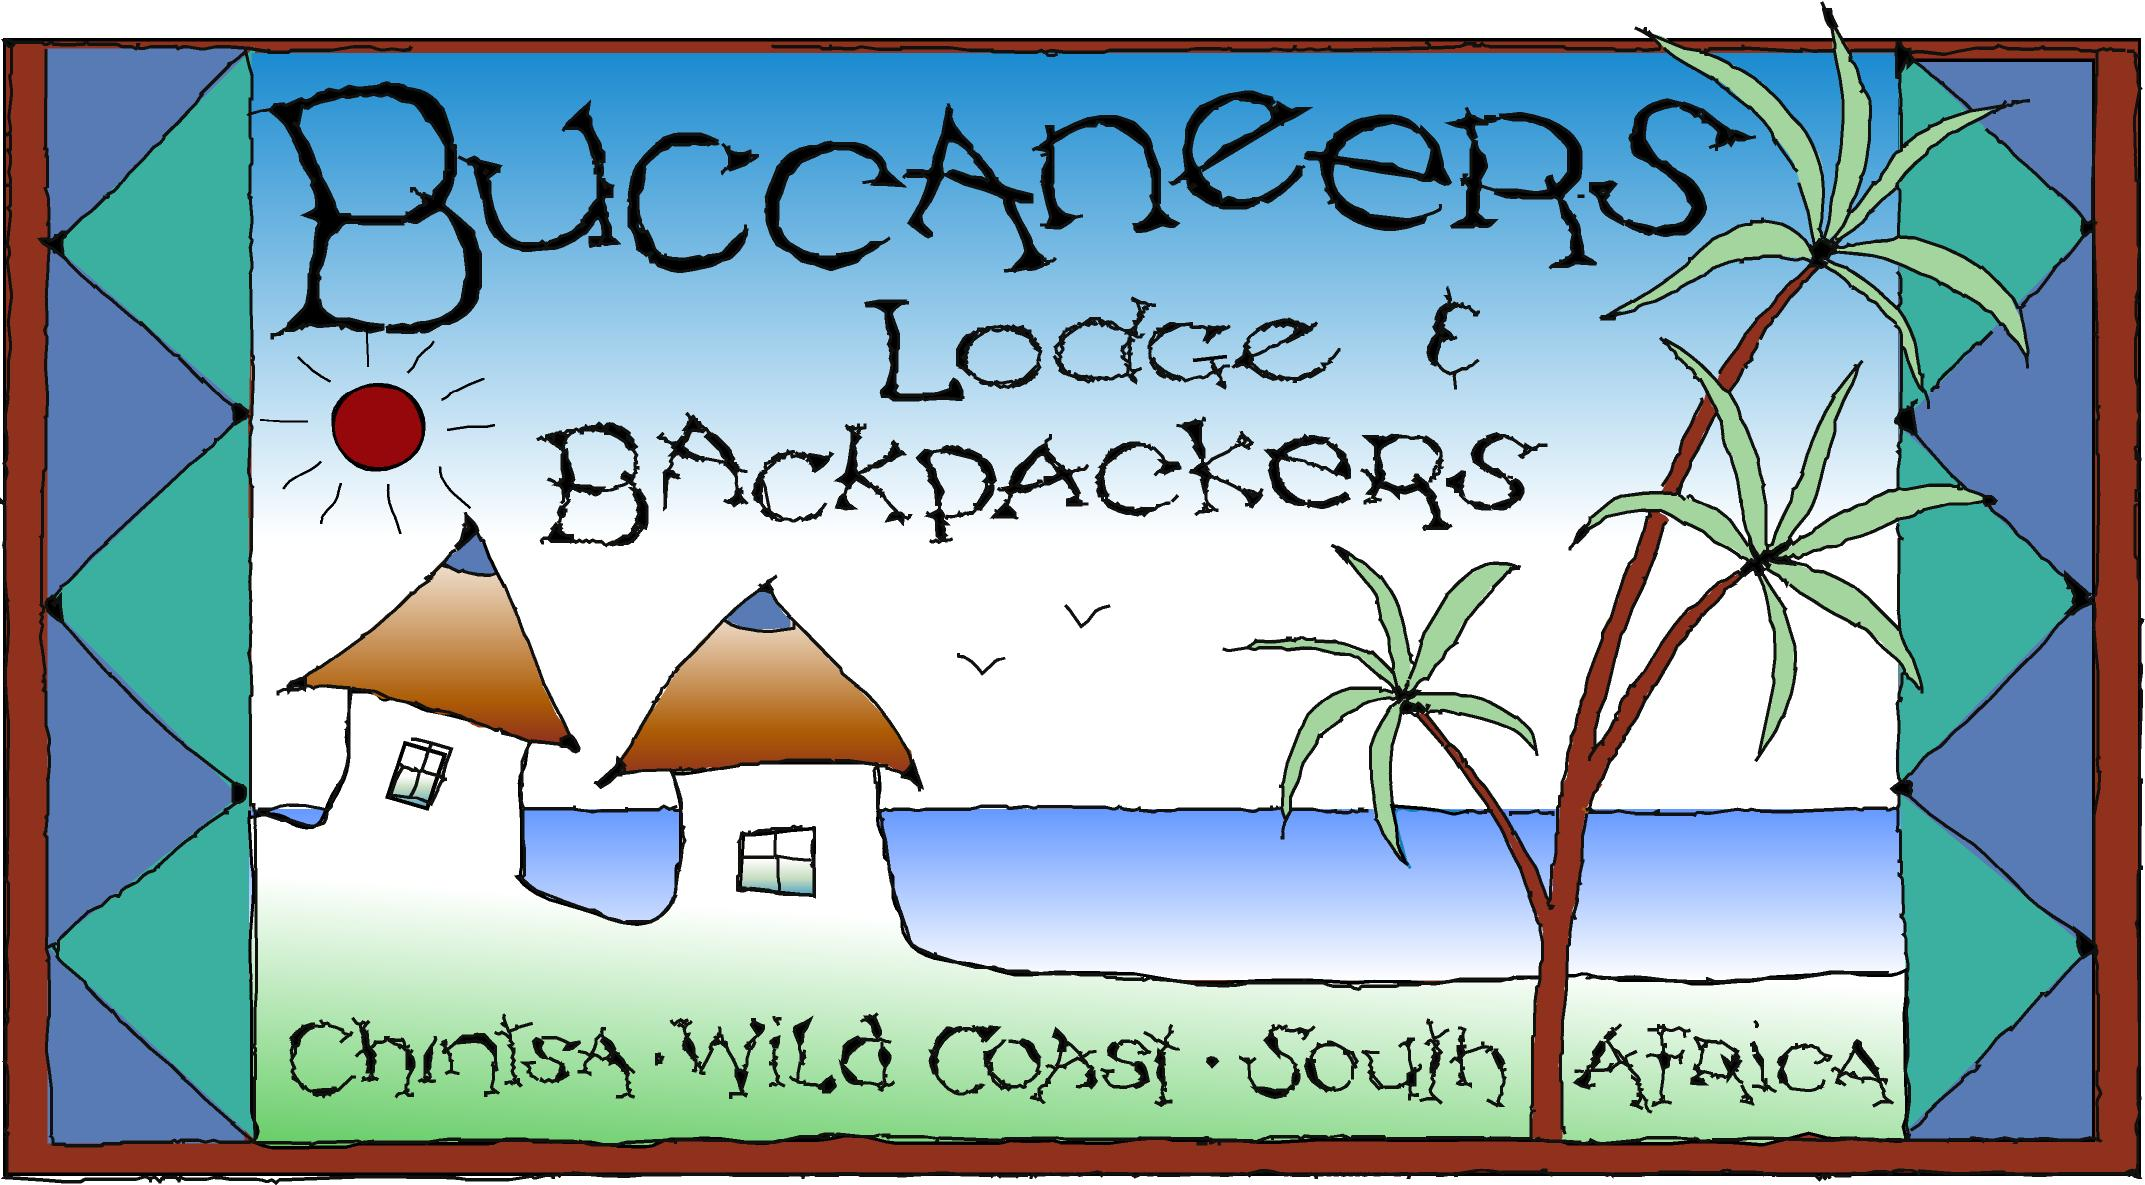 Buccaneers Lodge and Backpackers